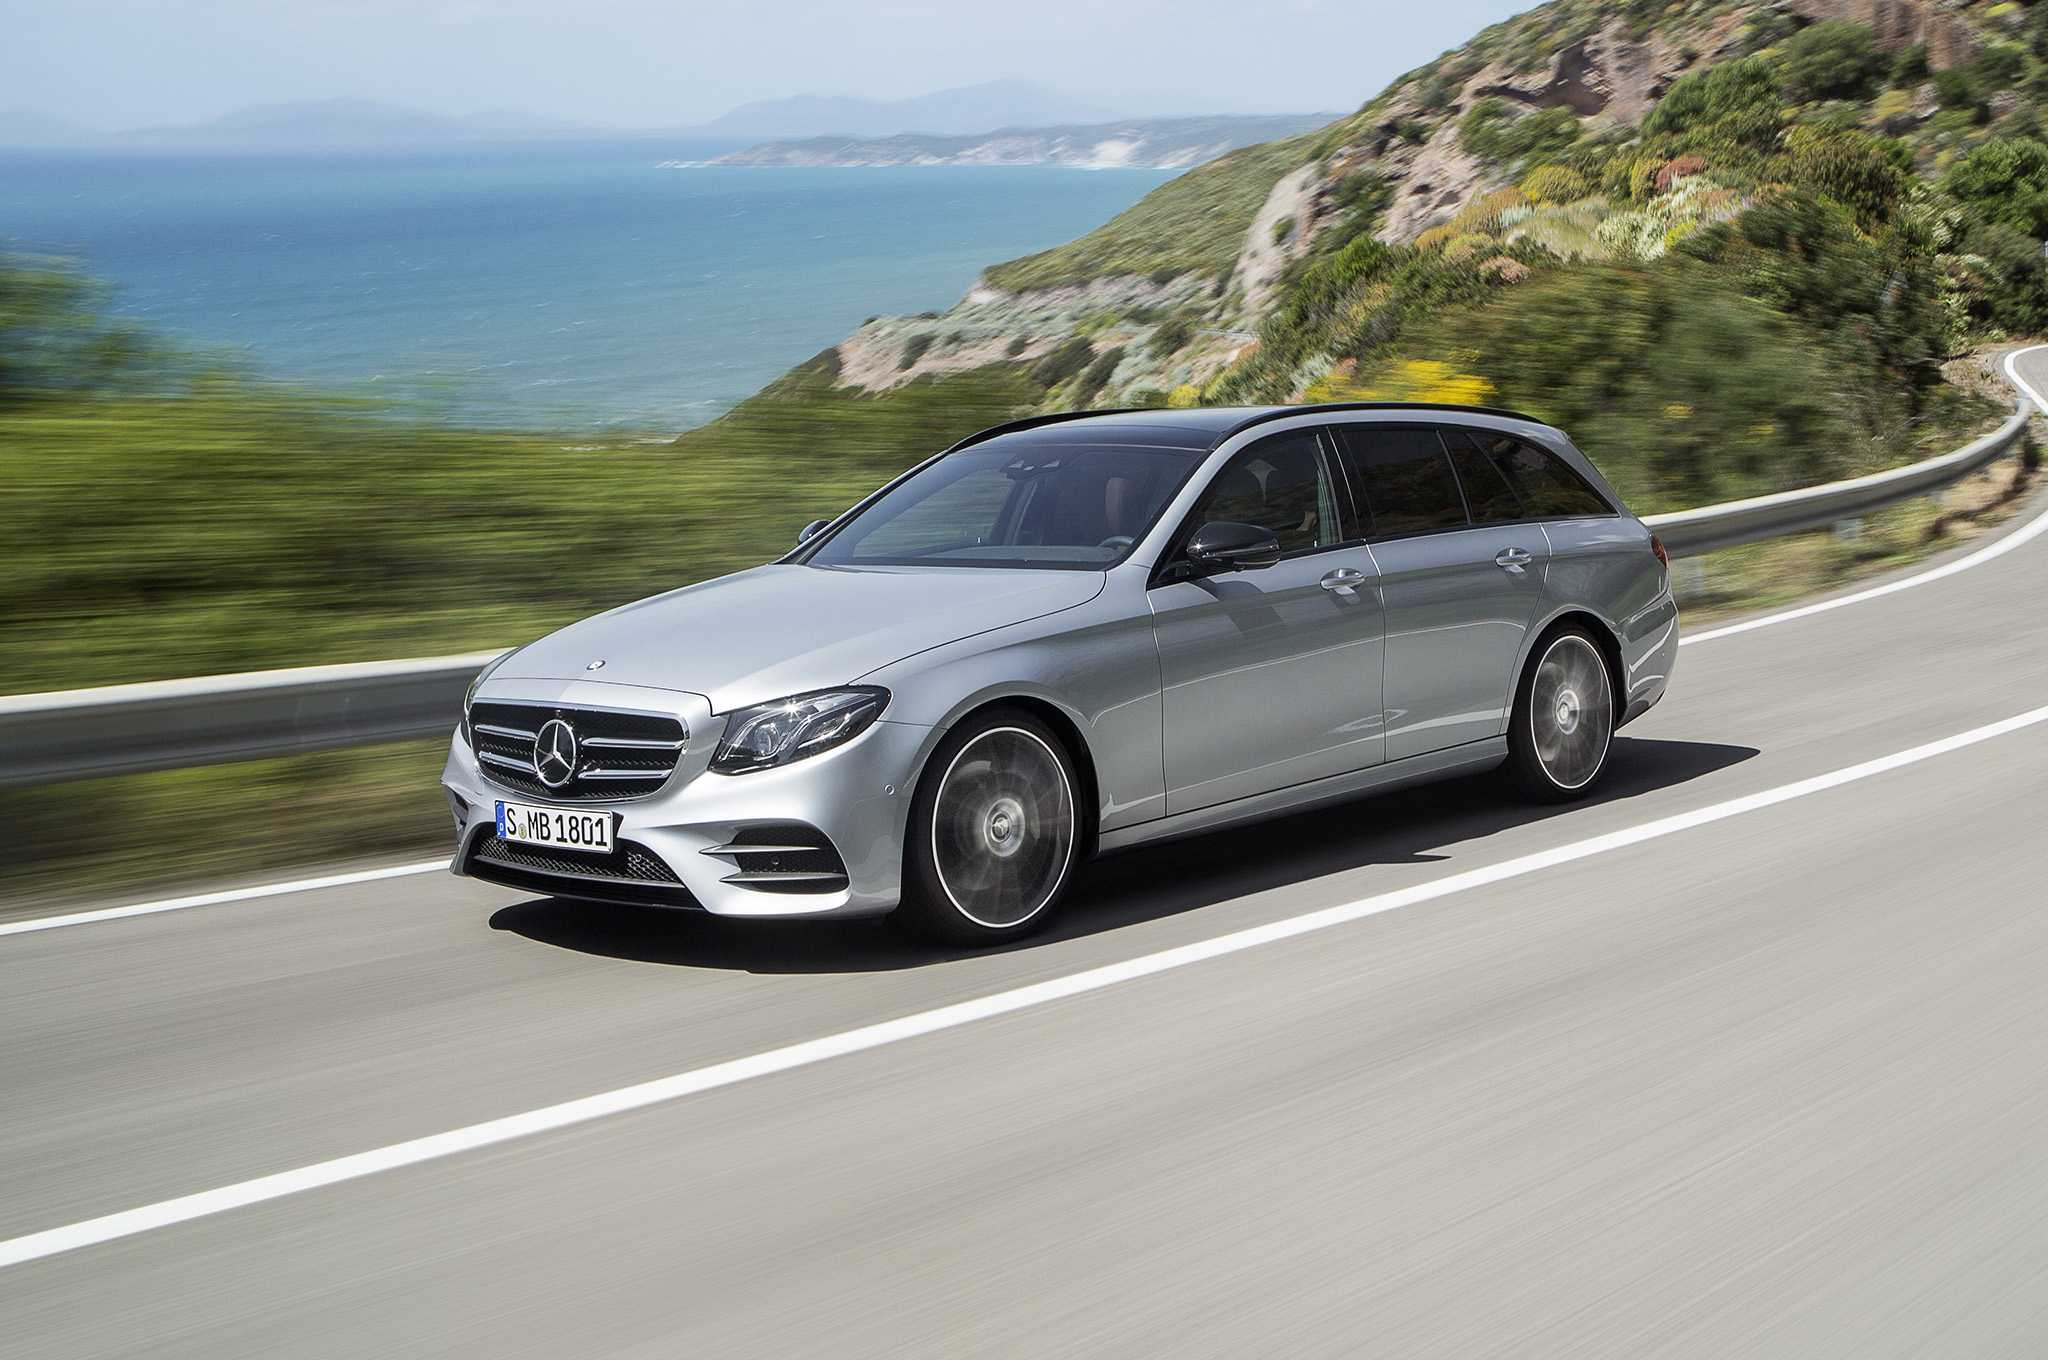 Mercedes Benz E-Class All Terrain SUV is Heading to 2016 Paris Expo